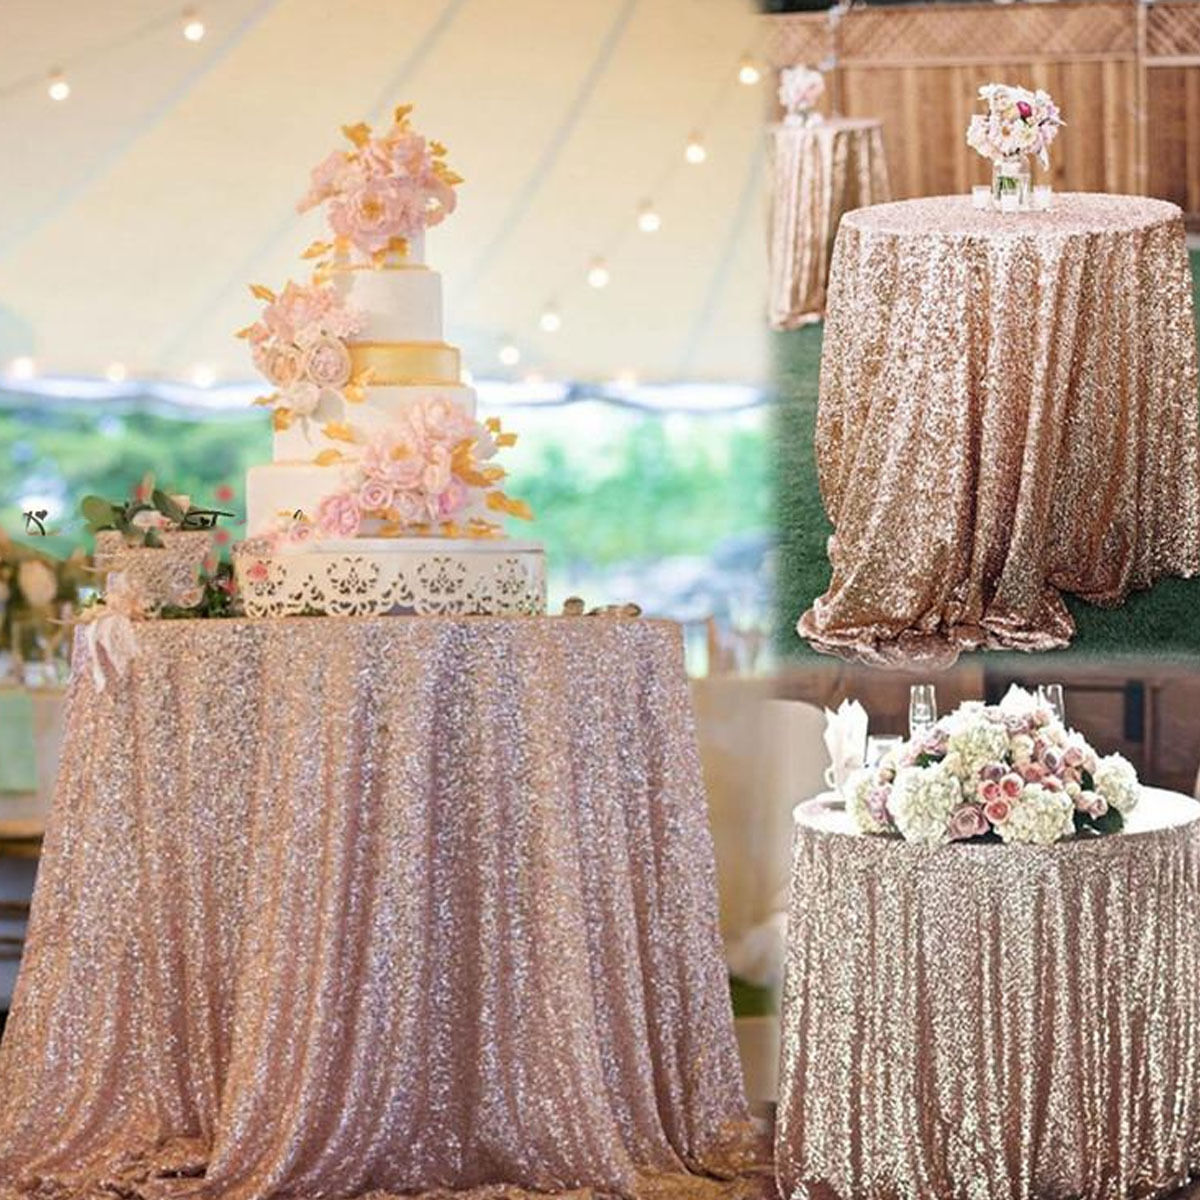 Sparkly Tablecloths Glitter Sequin Tablecloth Sequin Rose Gold Table Cloth Wedding Party Banquet Home Decoration Accessories Party Diy Decorations Aliexpress